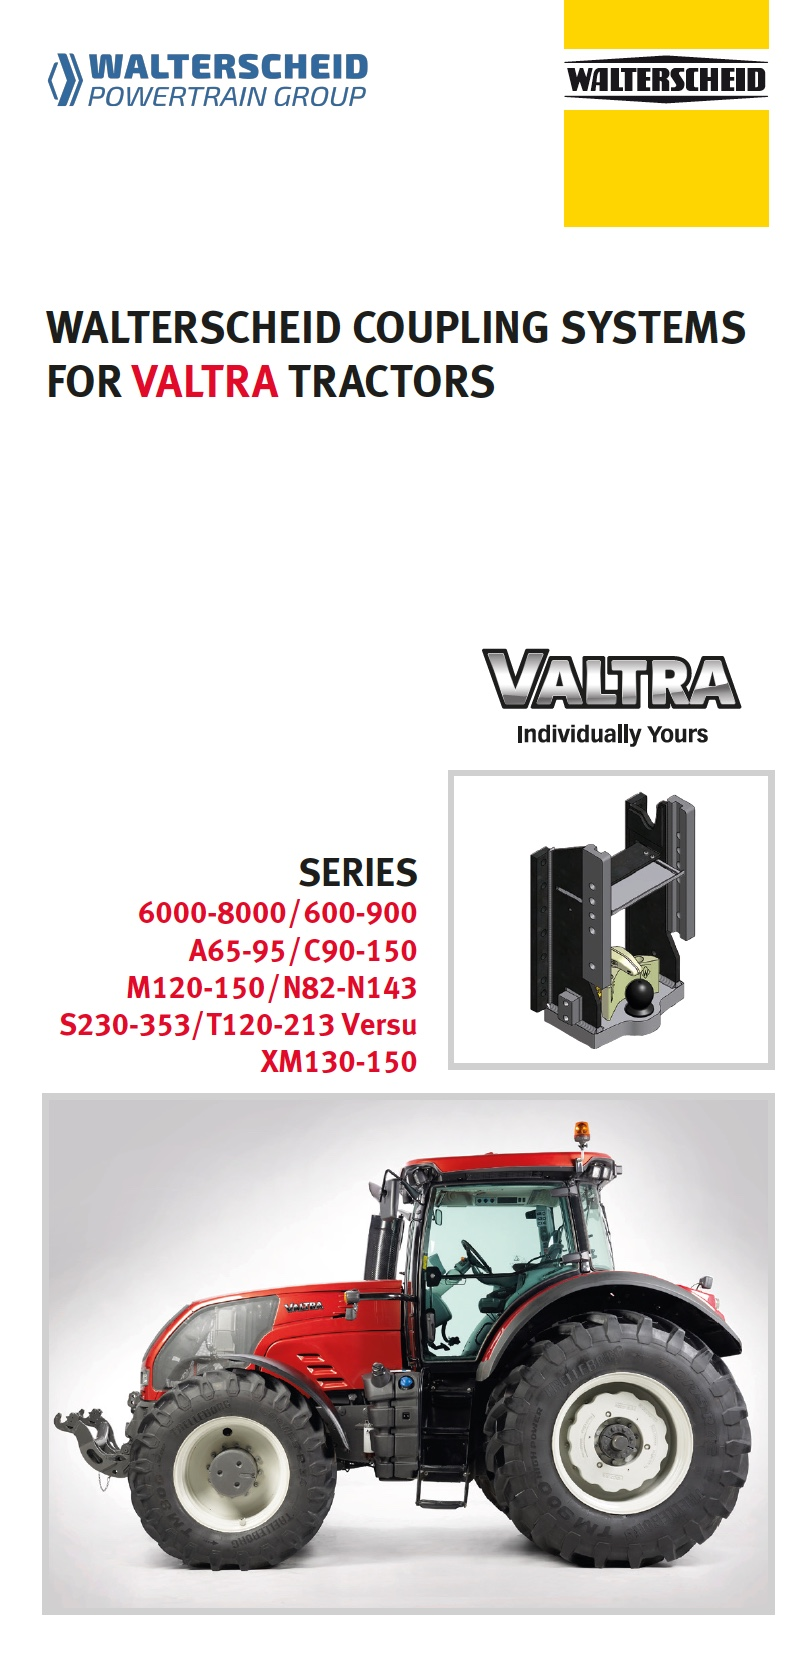 Coupling systems for Valtra tractors